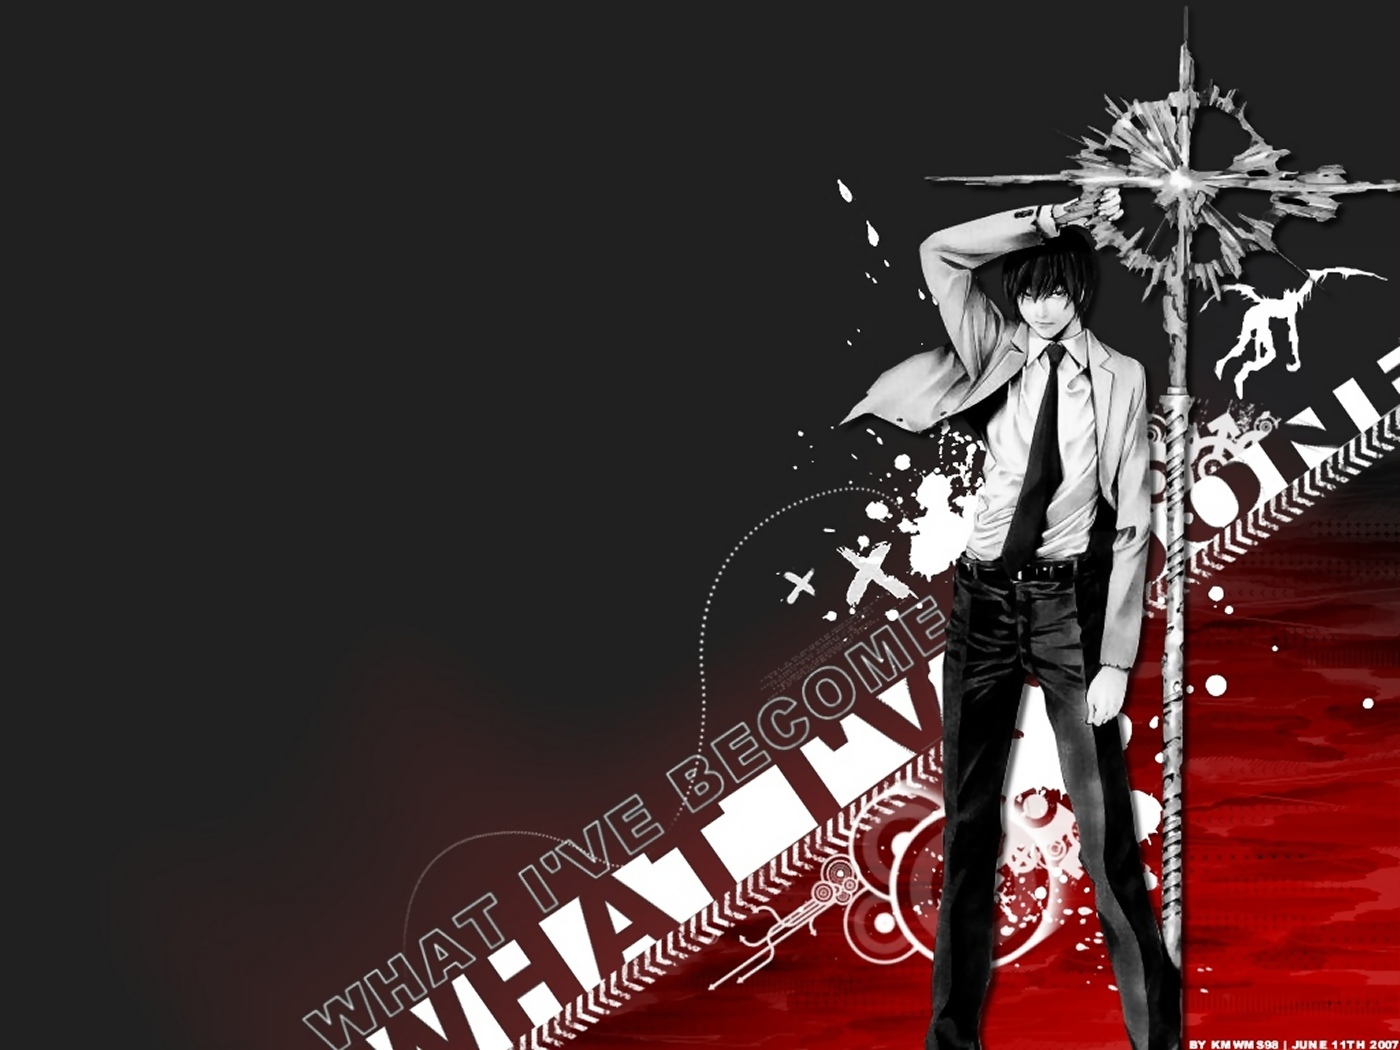 Wallpaper Hd Anime Naruto Wallpapers Death Note Hd